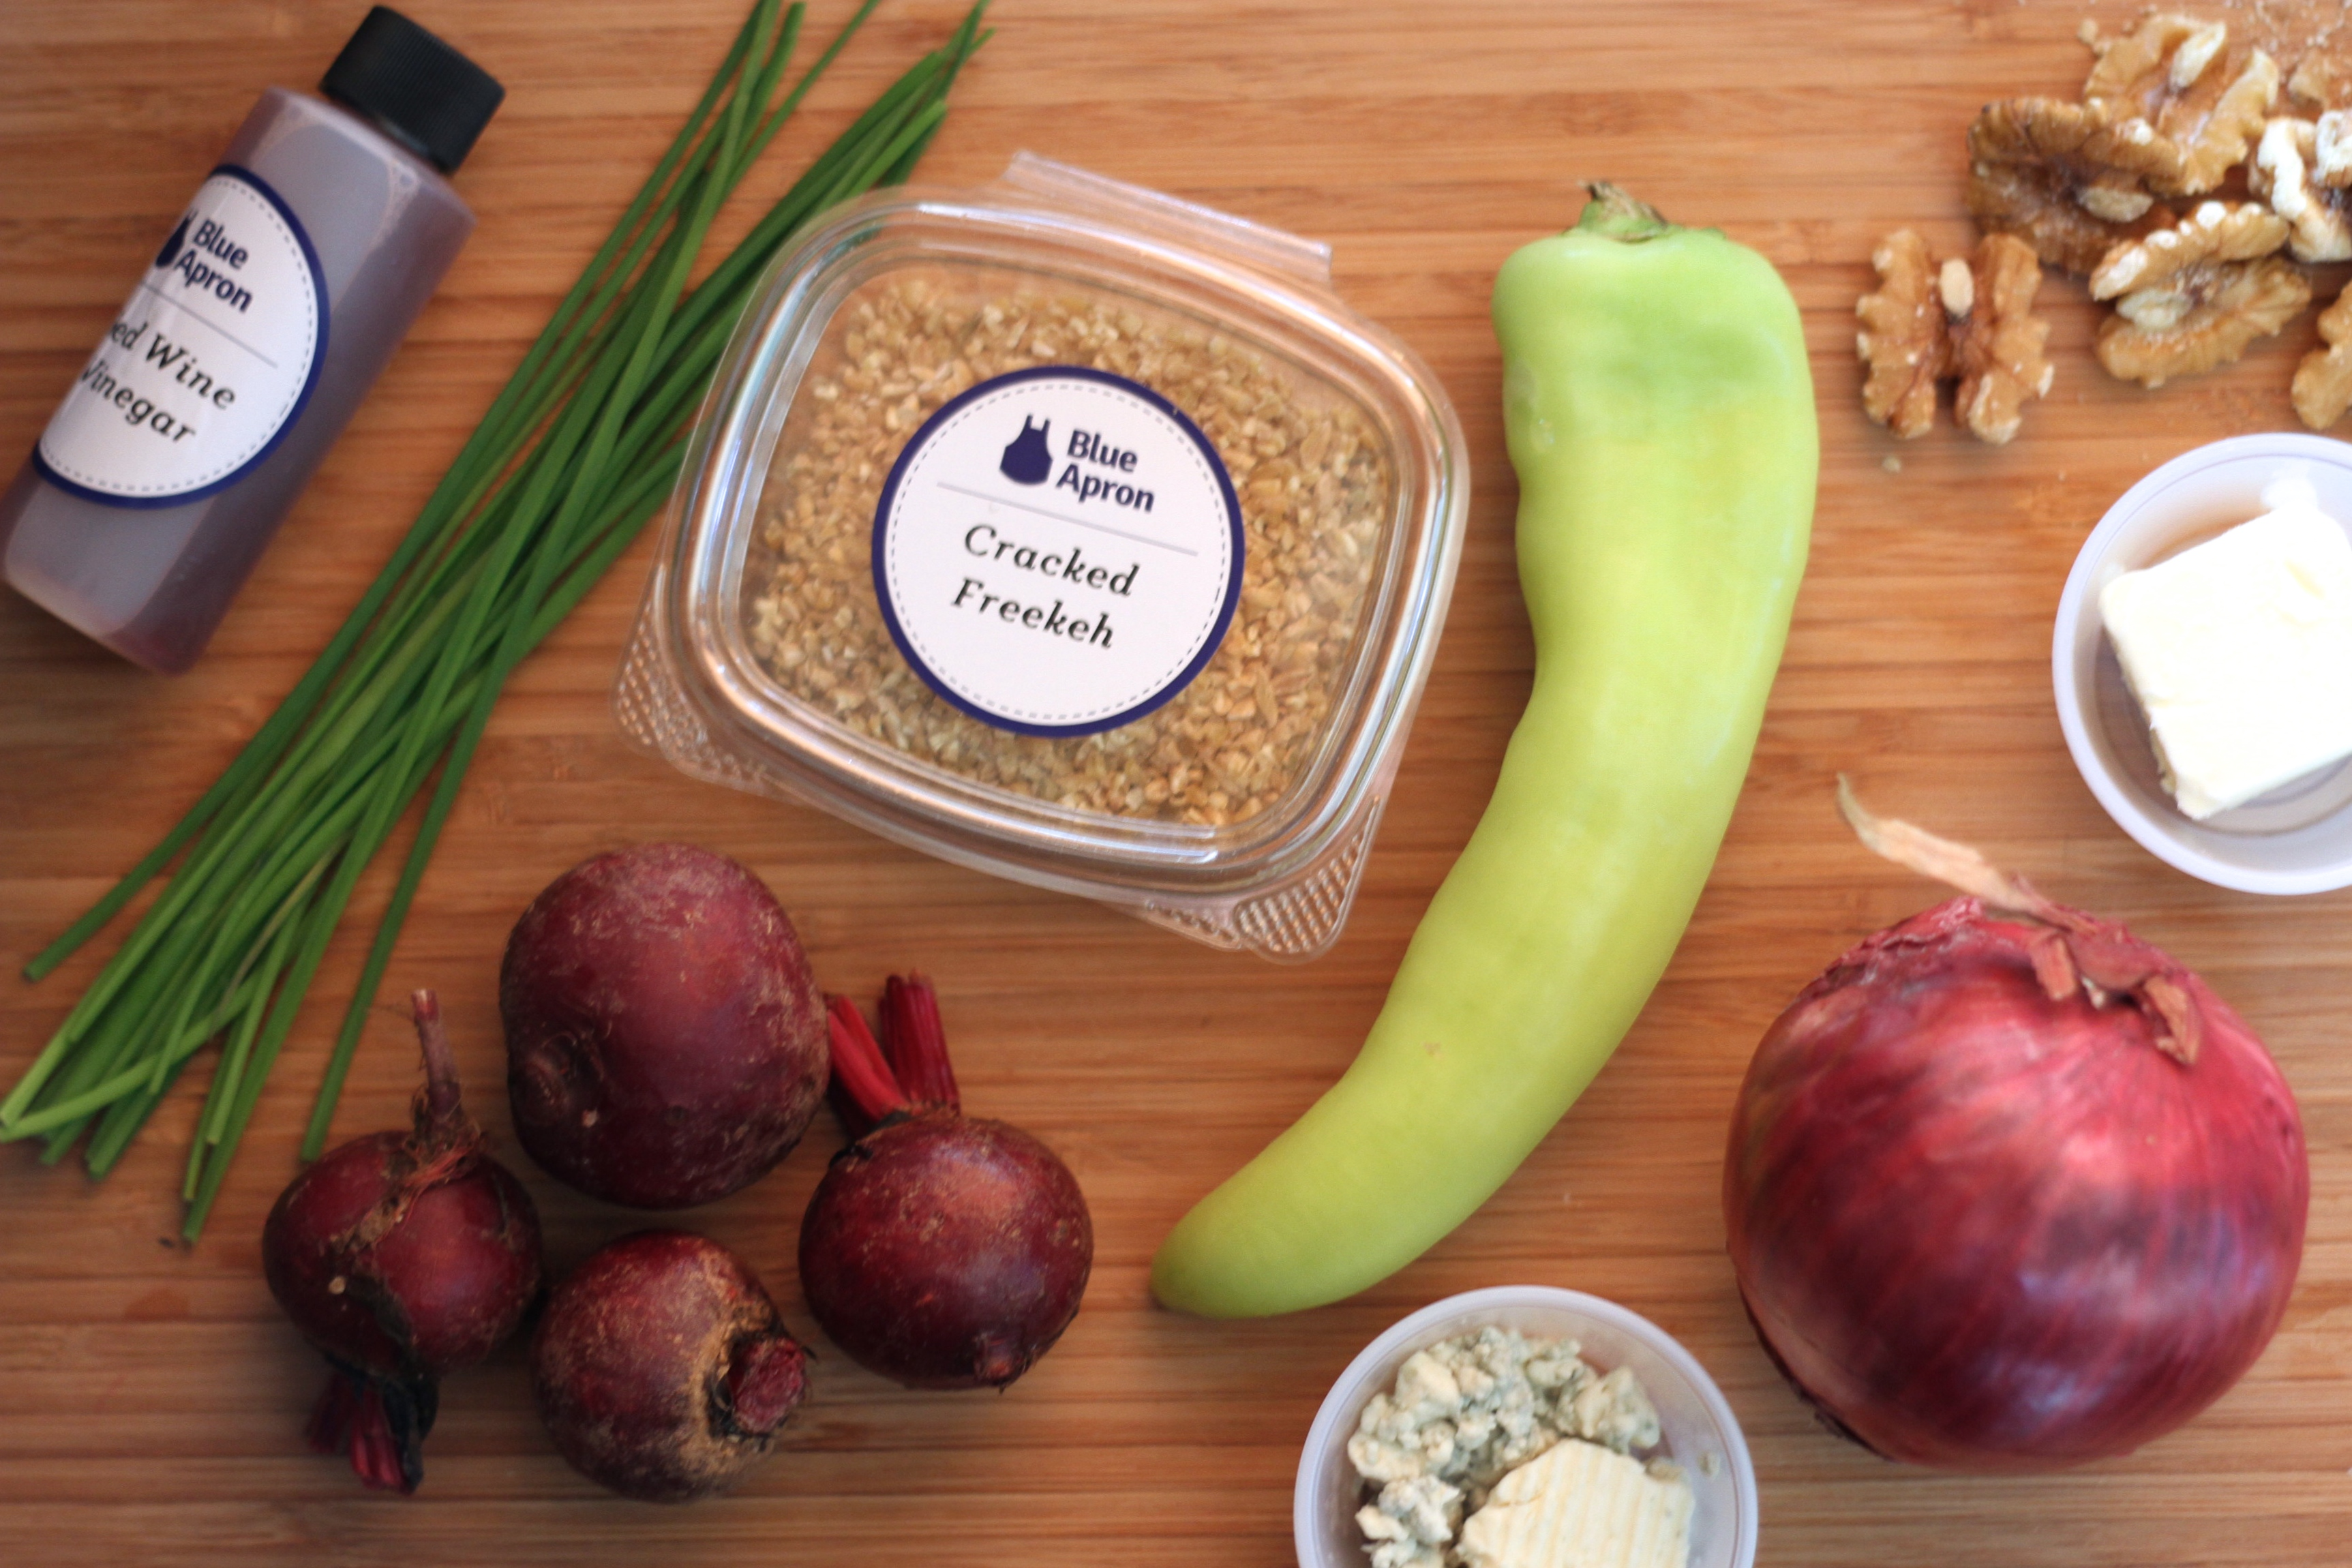 Blue apron one person